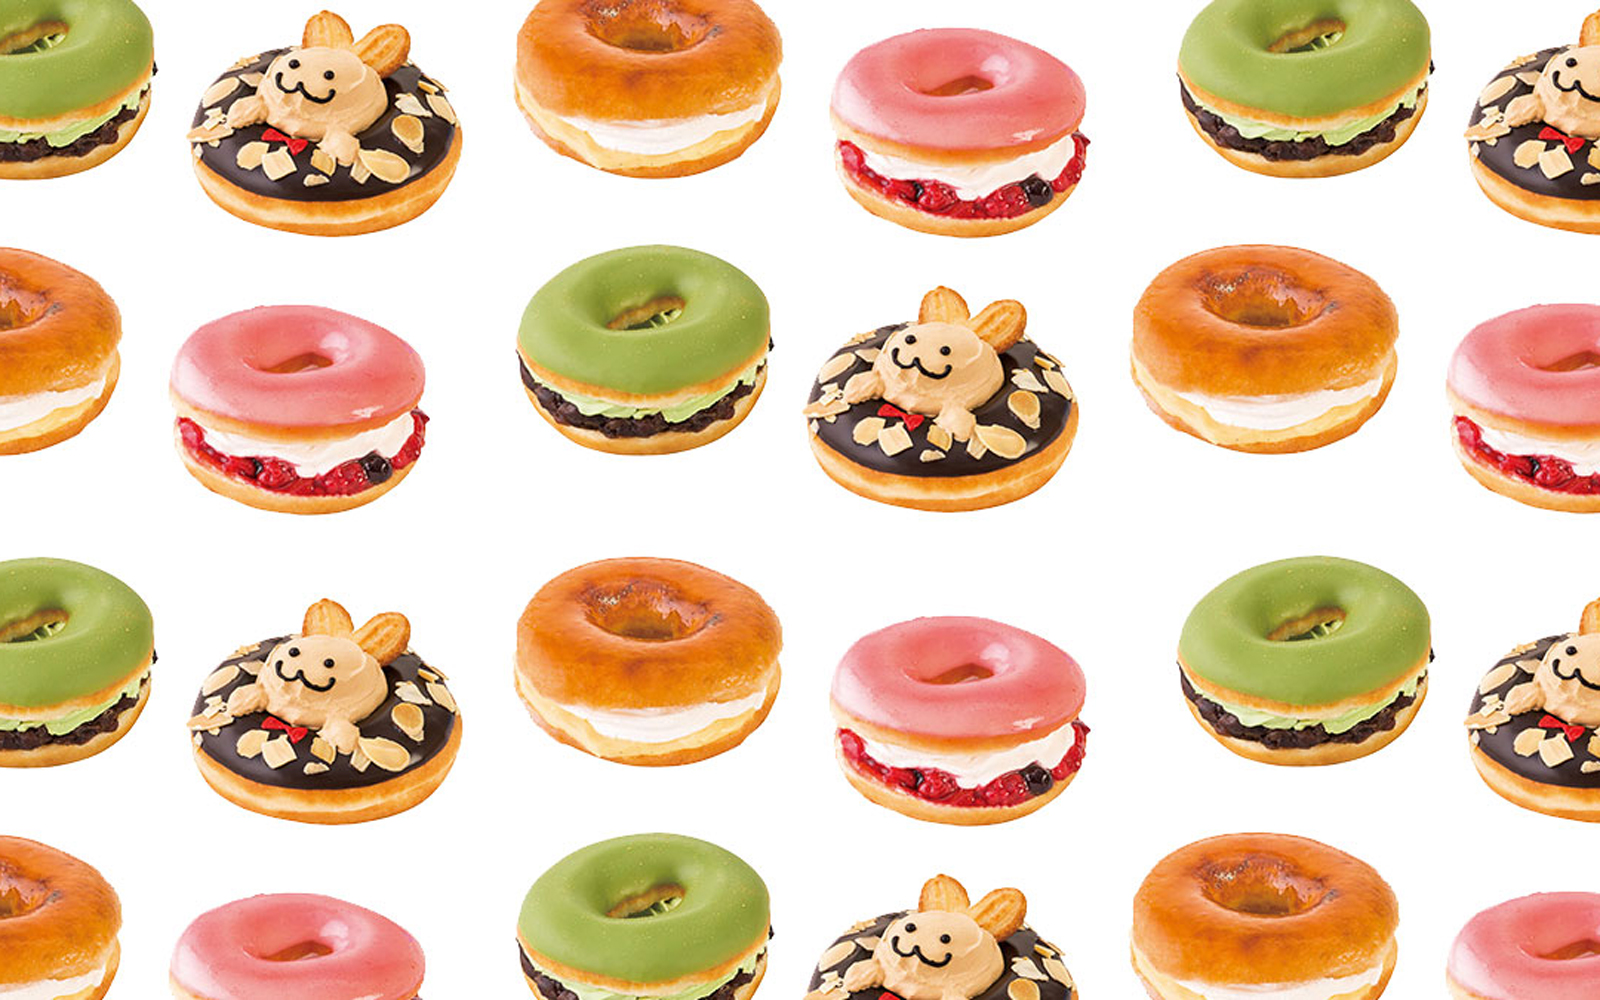 Krispy Kreme Has A New Line of 'Luxury' Doughnuts